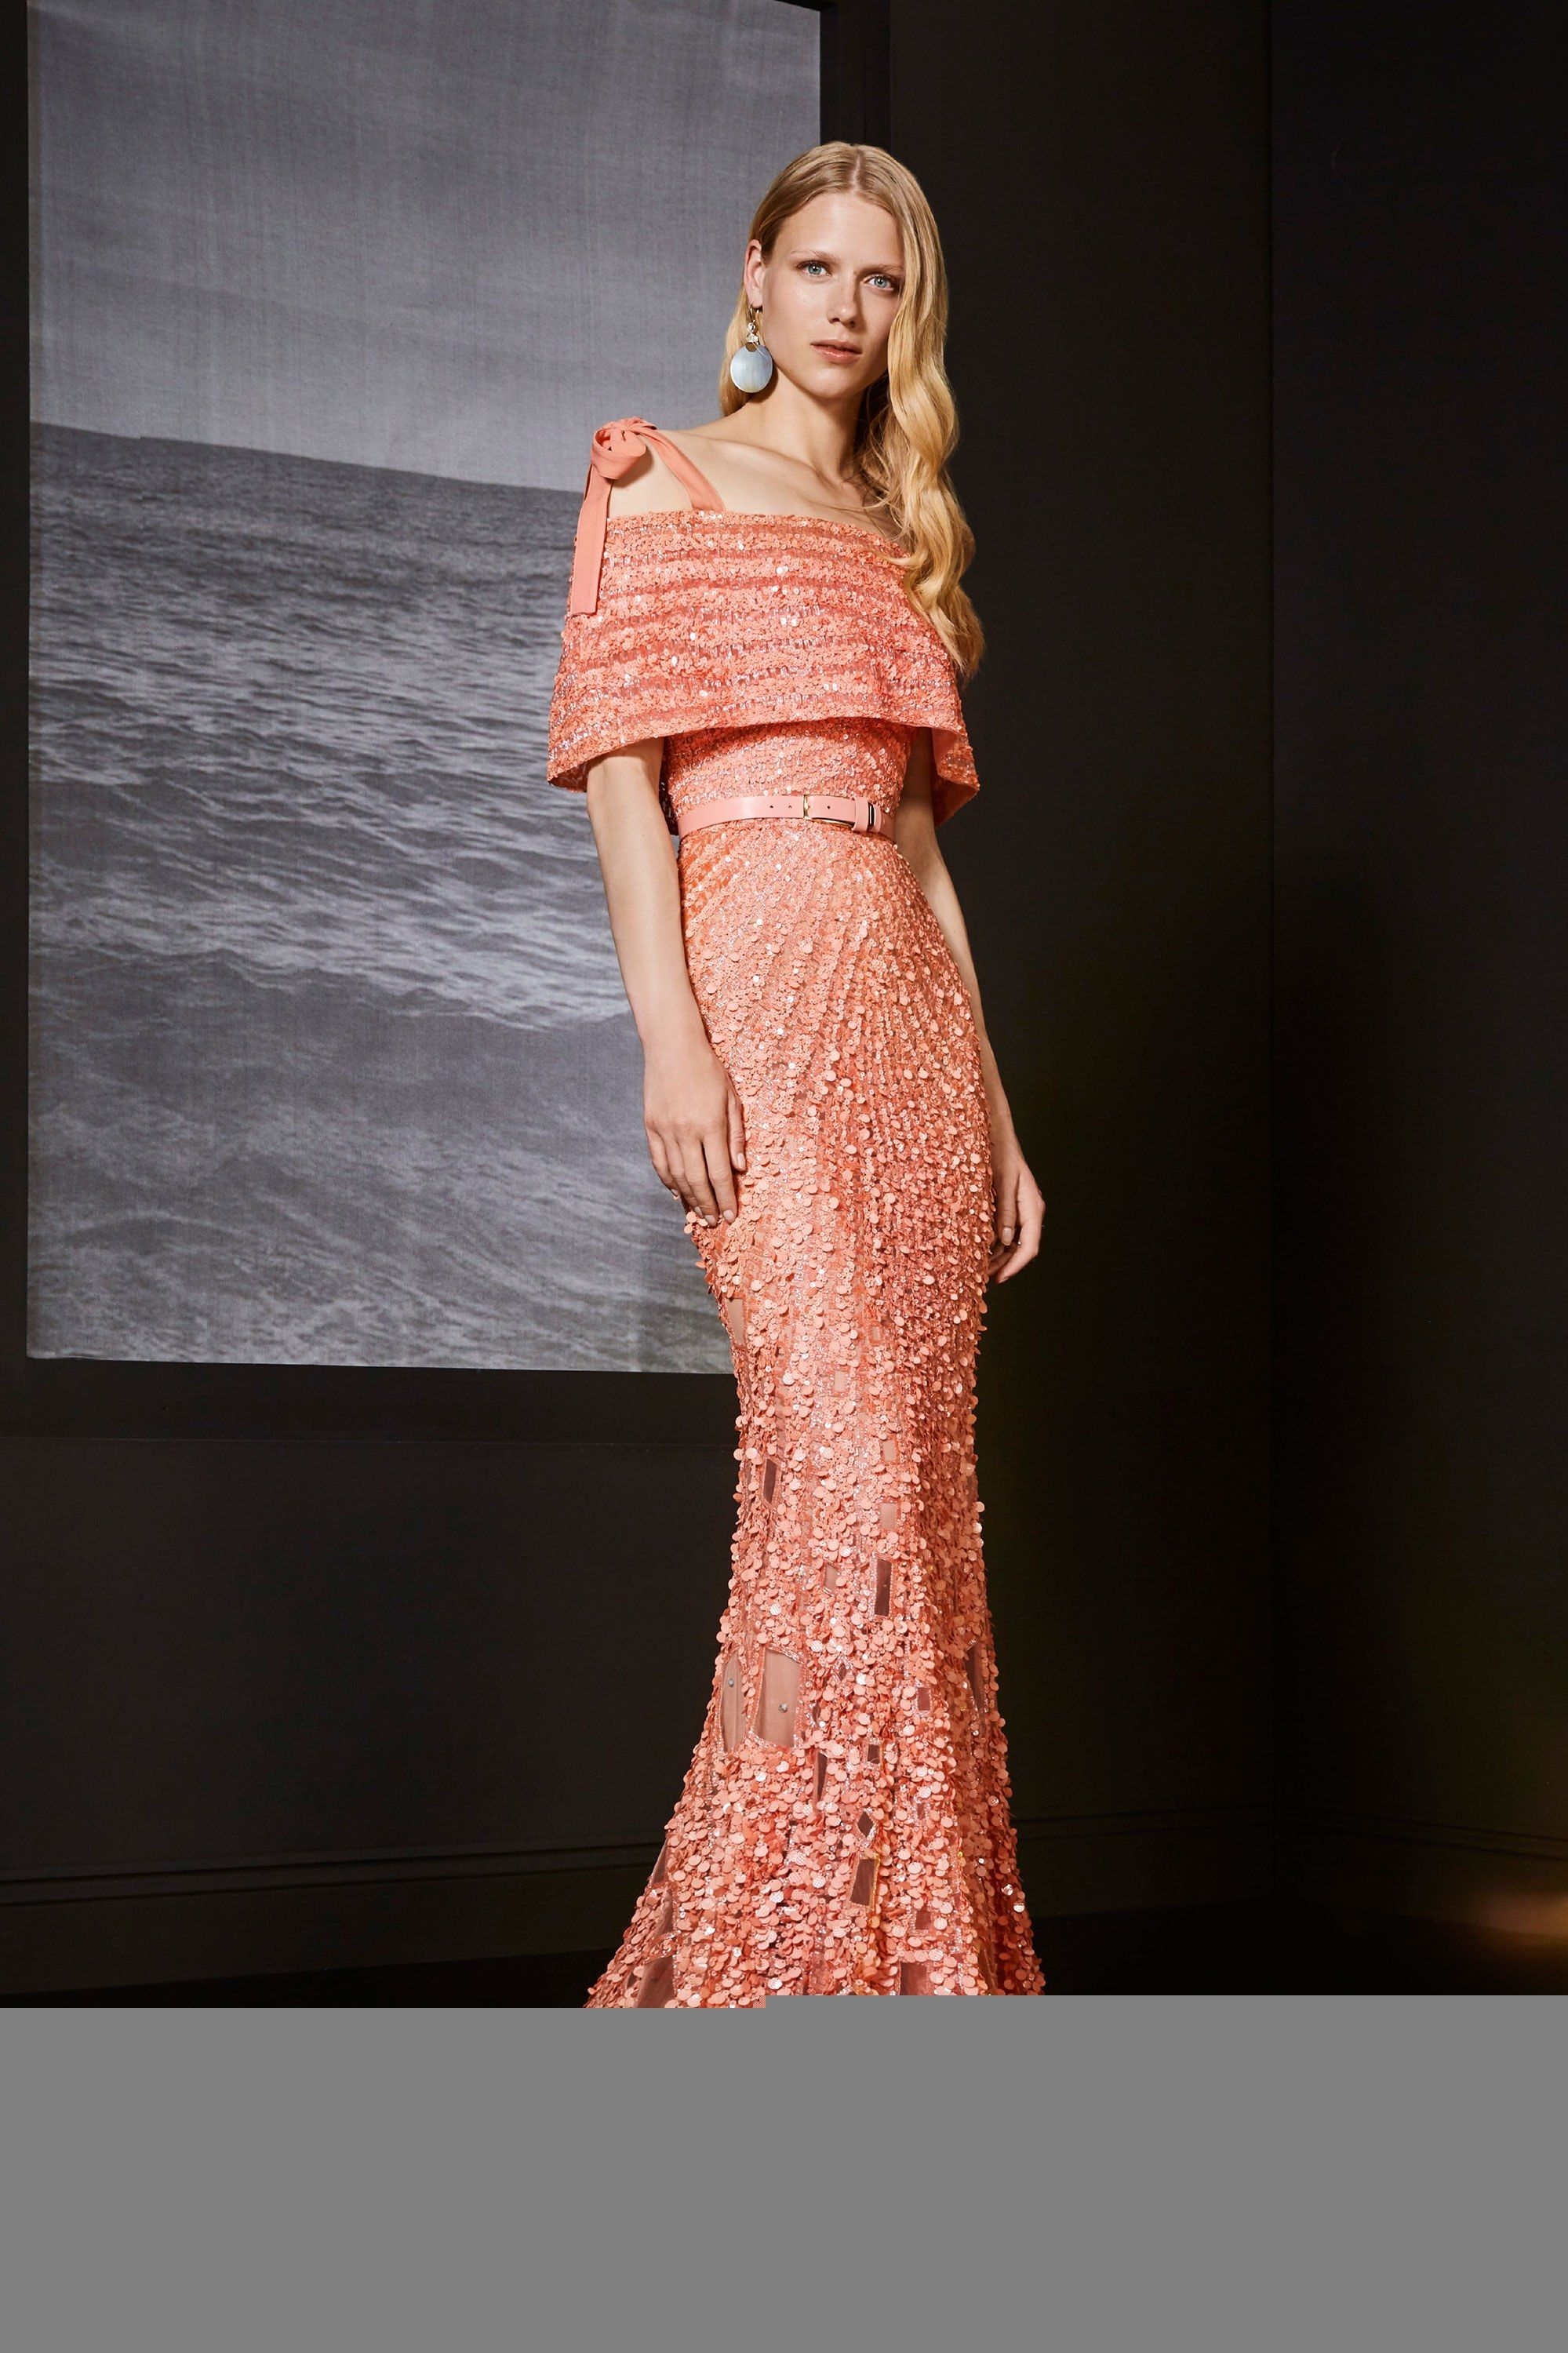 Elie Saab Resort 2018  Another peachy keen look! I love teh cold shoulder  look and the intricate beading! Glamorous from head to toe! a72c96da137d8